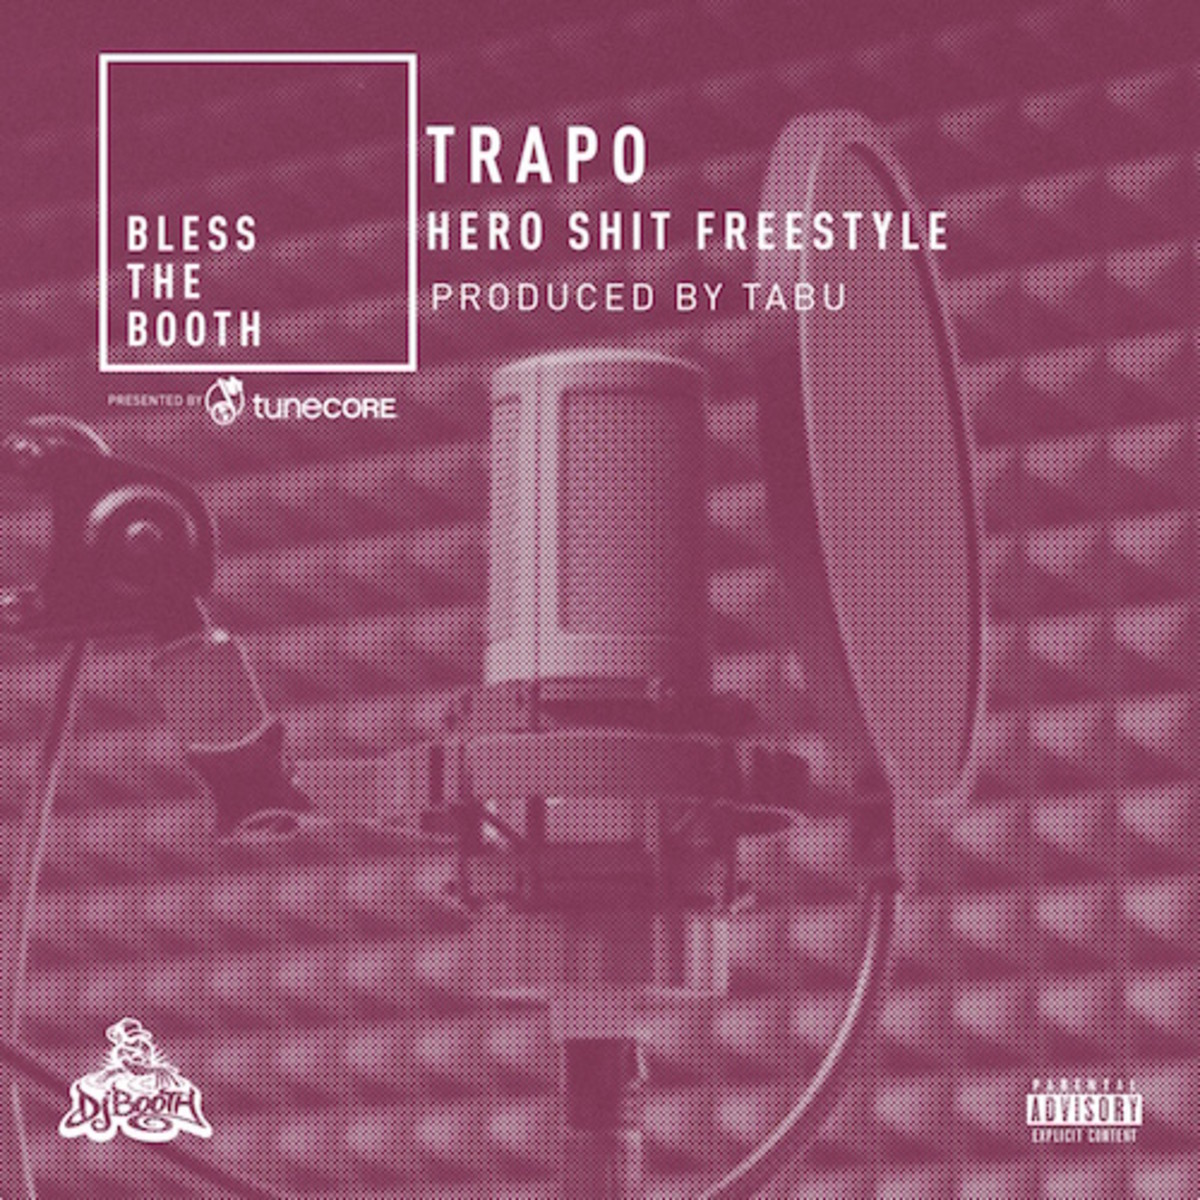 trapo-bless-the-booth.jpg